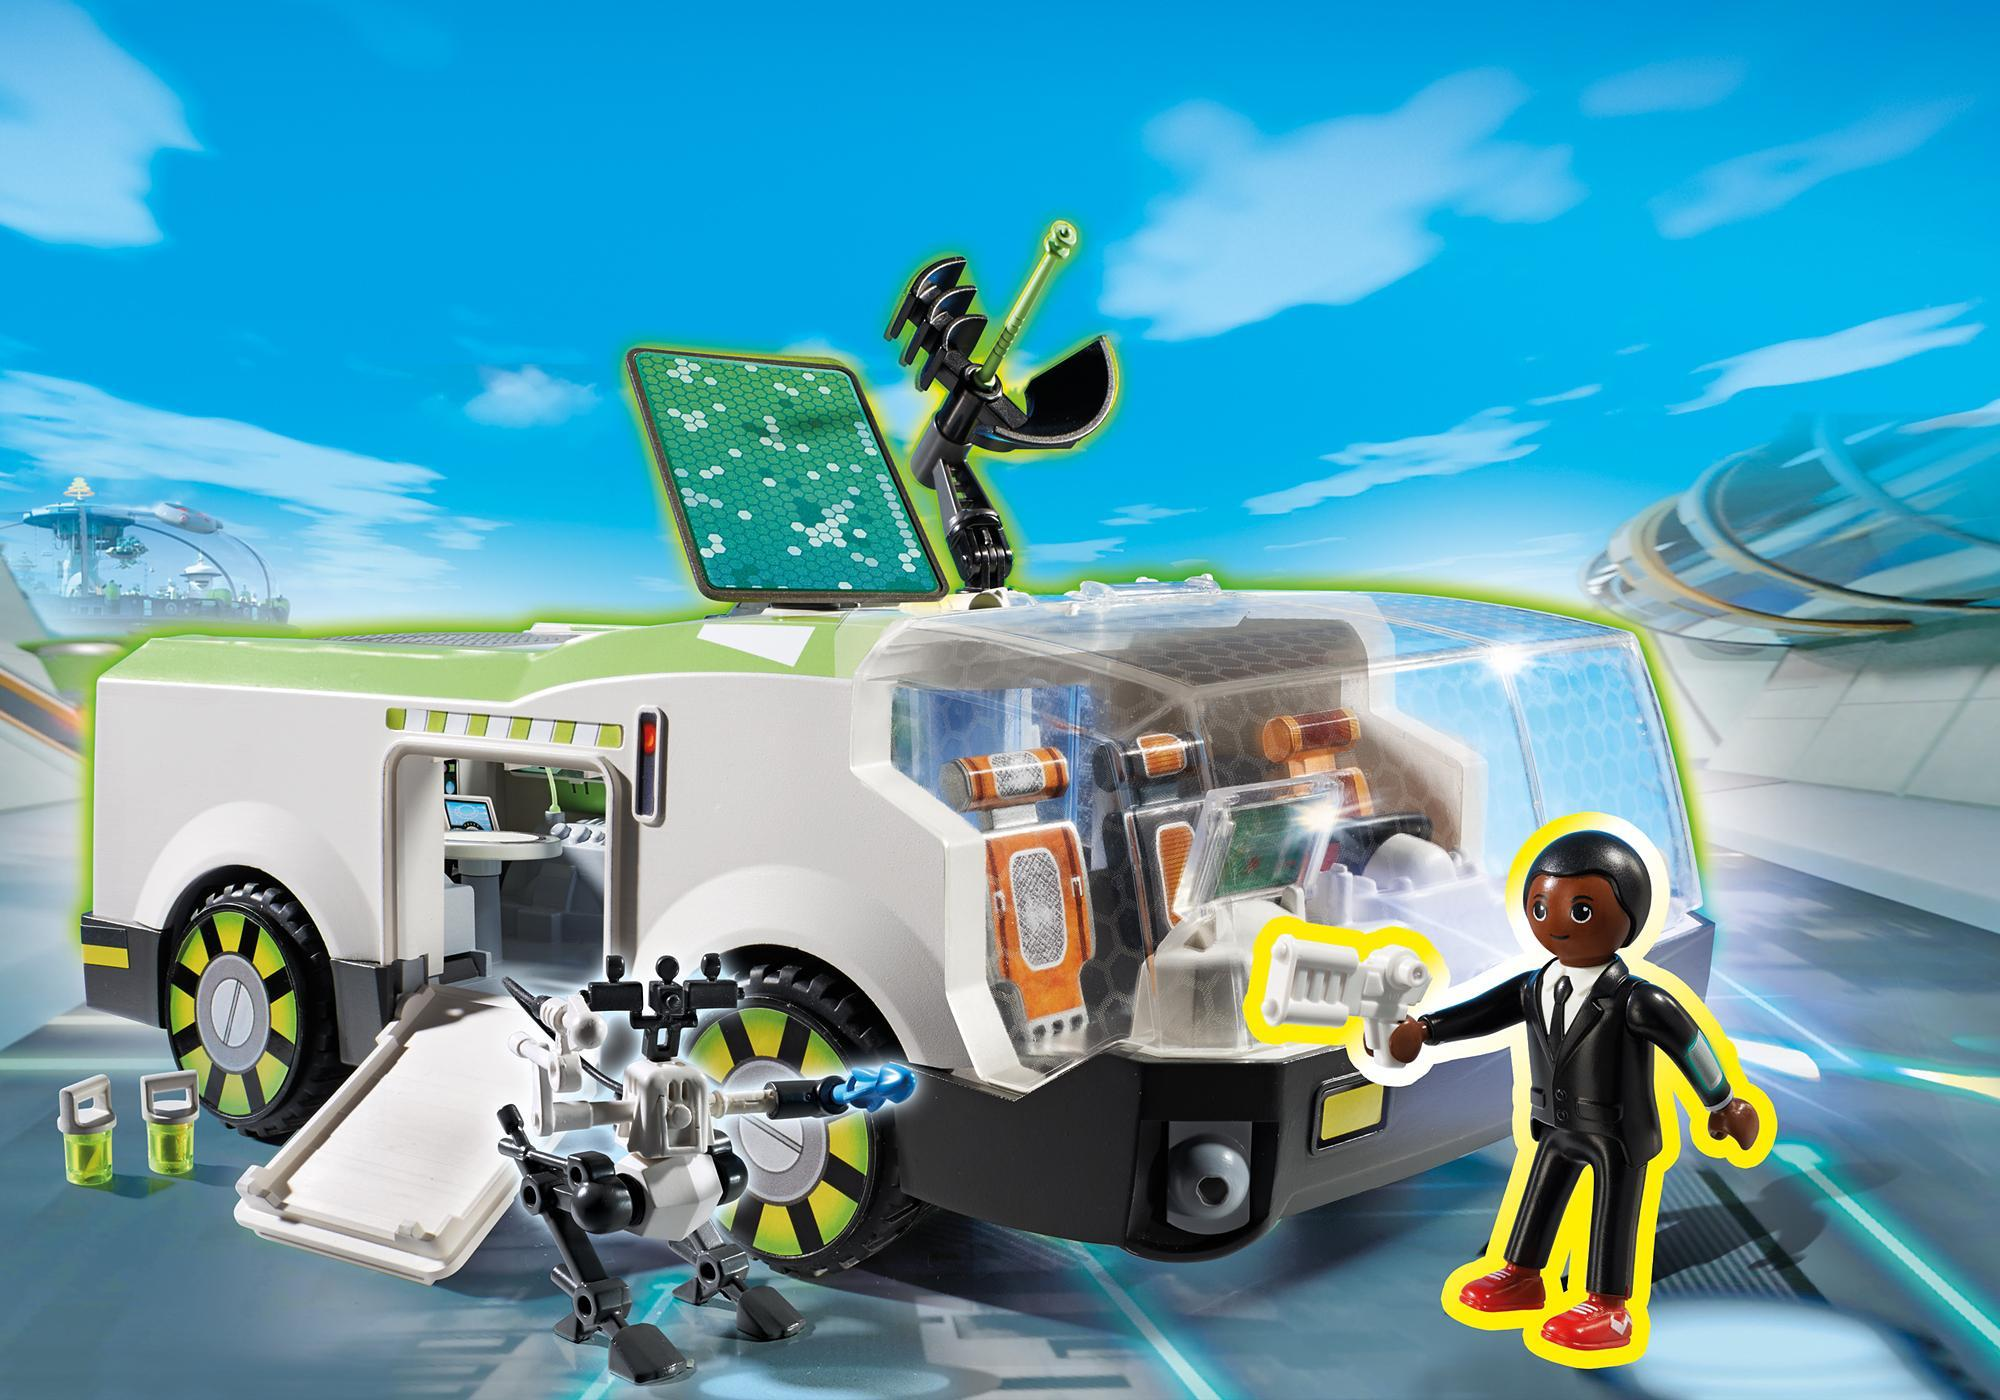 http://media.playmobil.com/i/playmobil/6692_product_detail